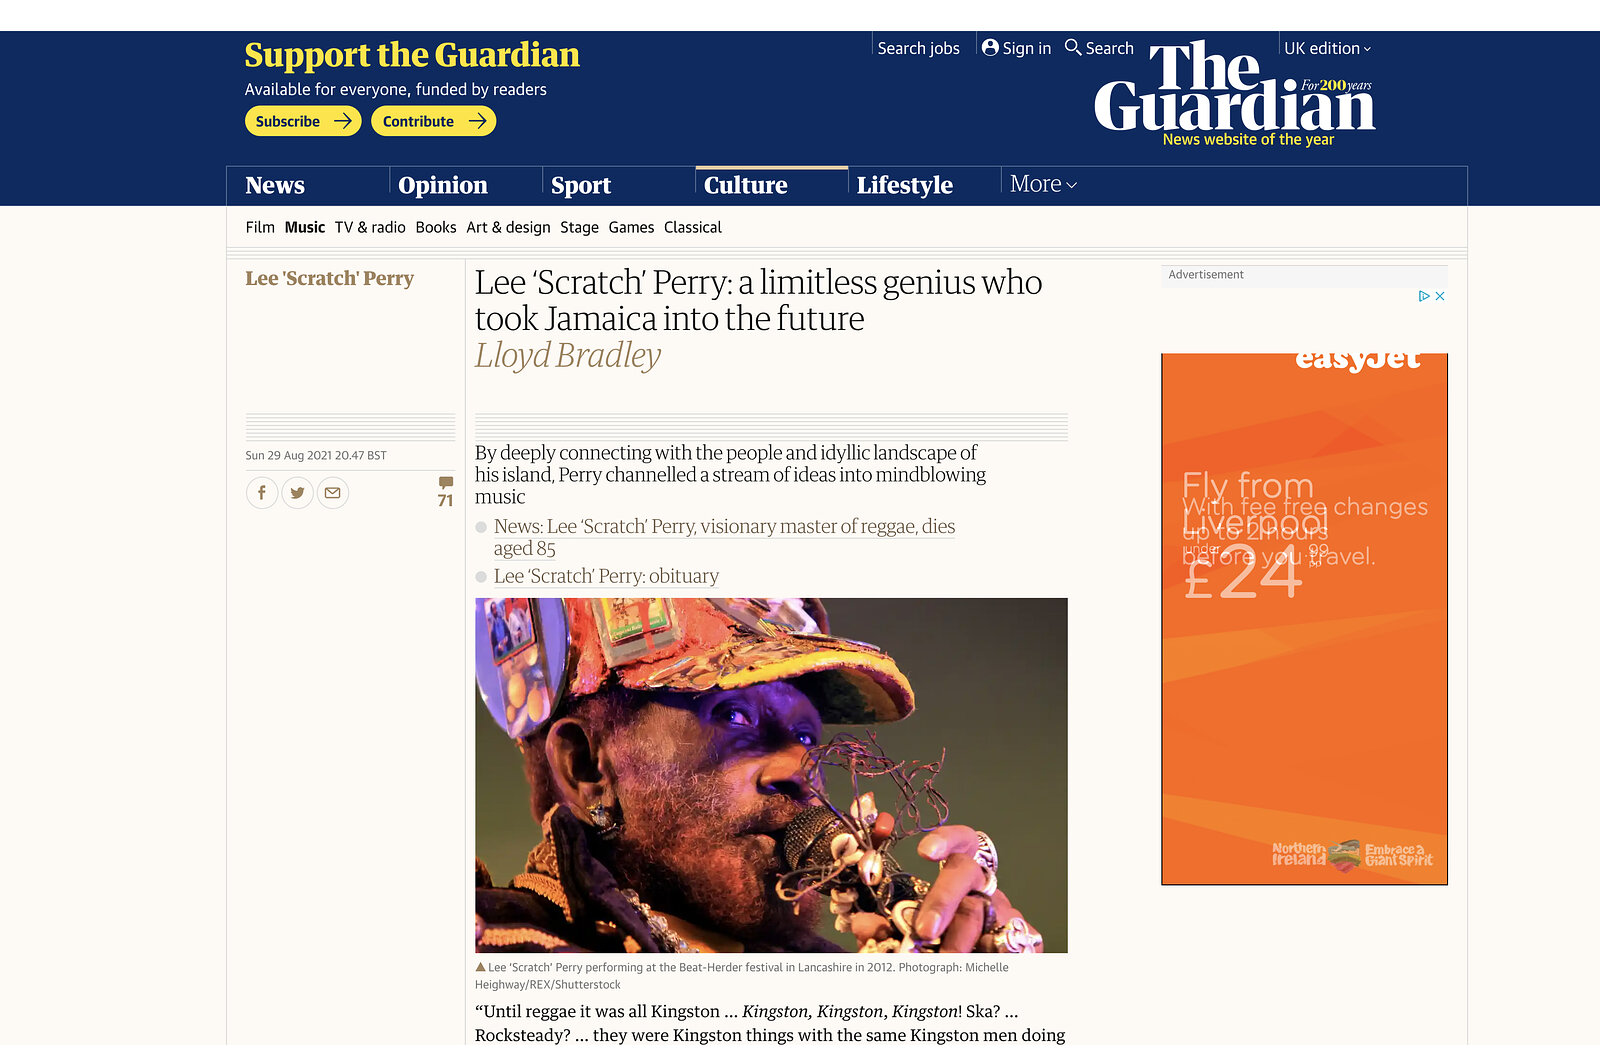 Lee Scratch Perry Live at Beat Herder 2012 (Archive) - The Guardian Sept 2021